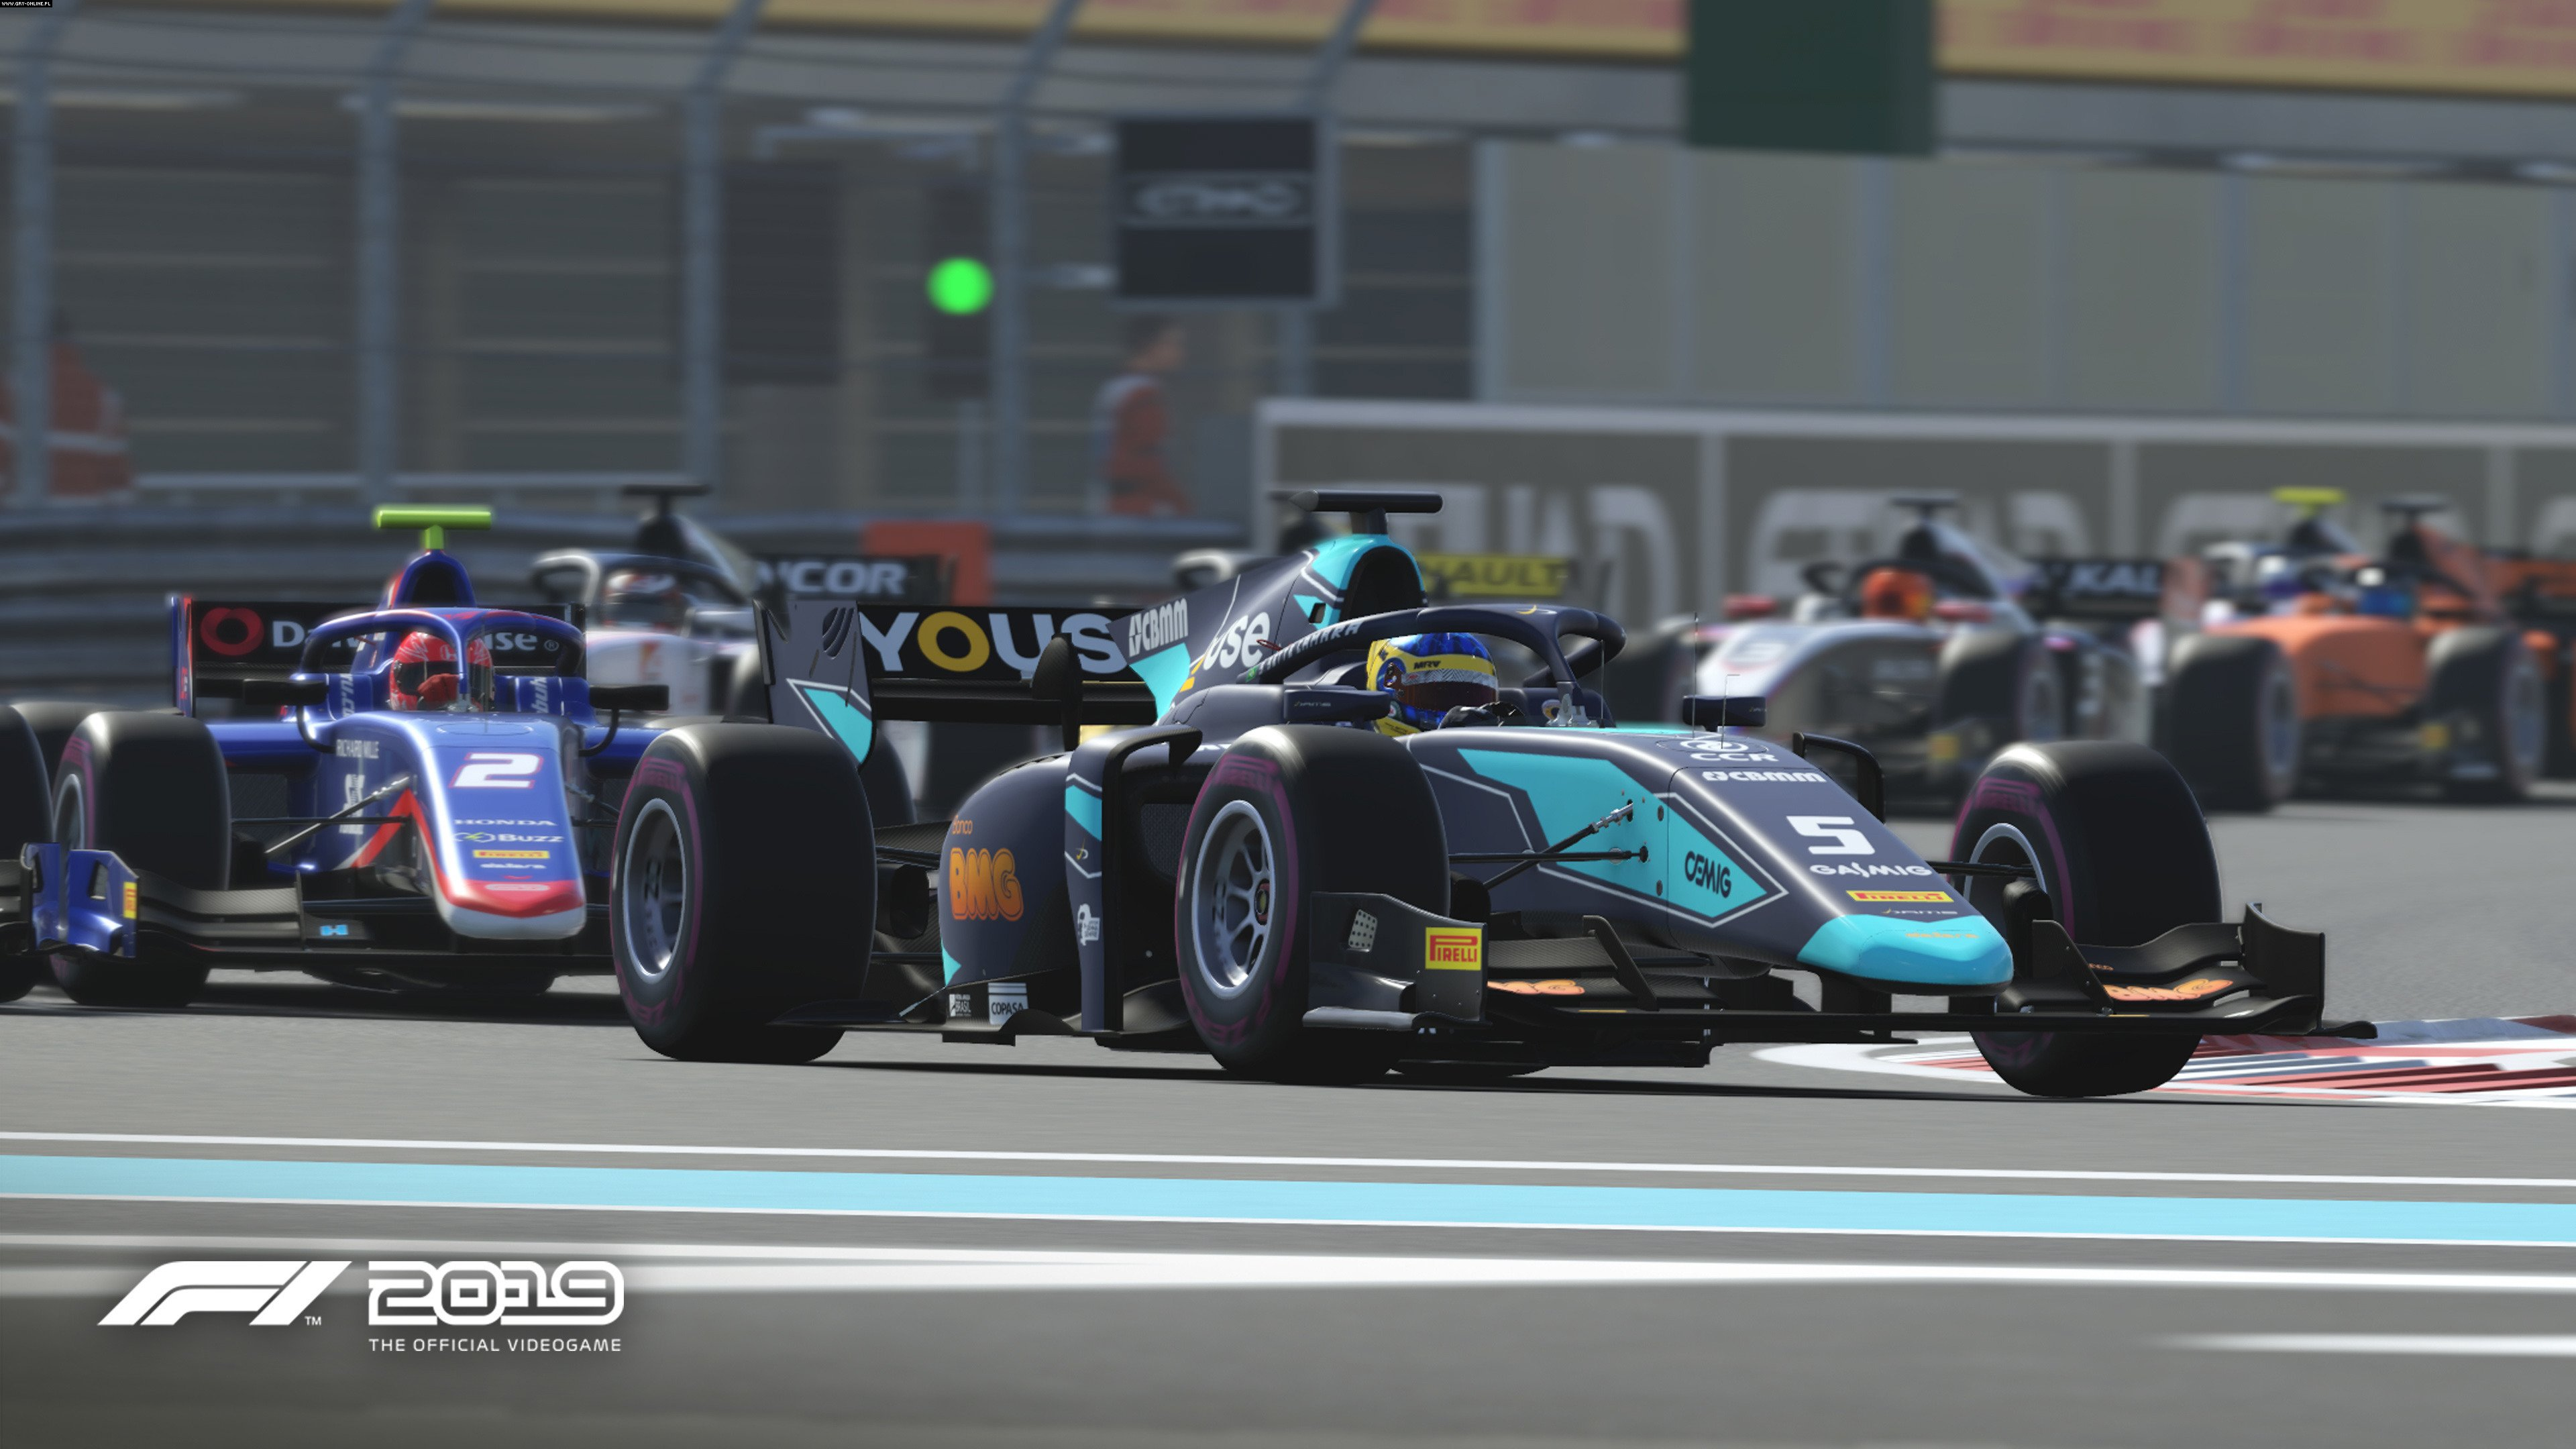 F1 2019 PC, PS4, XONE Games Image 6/104, Codemasters Software